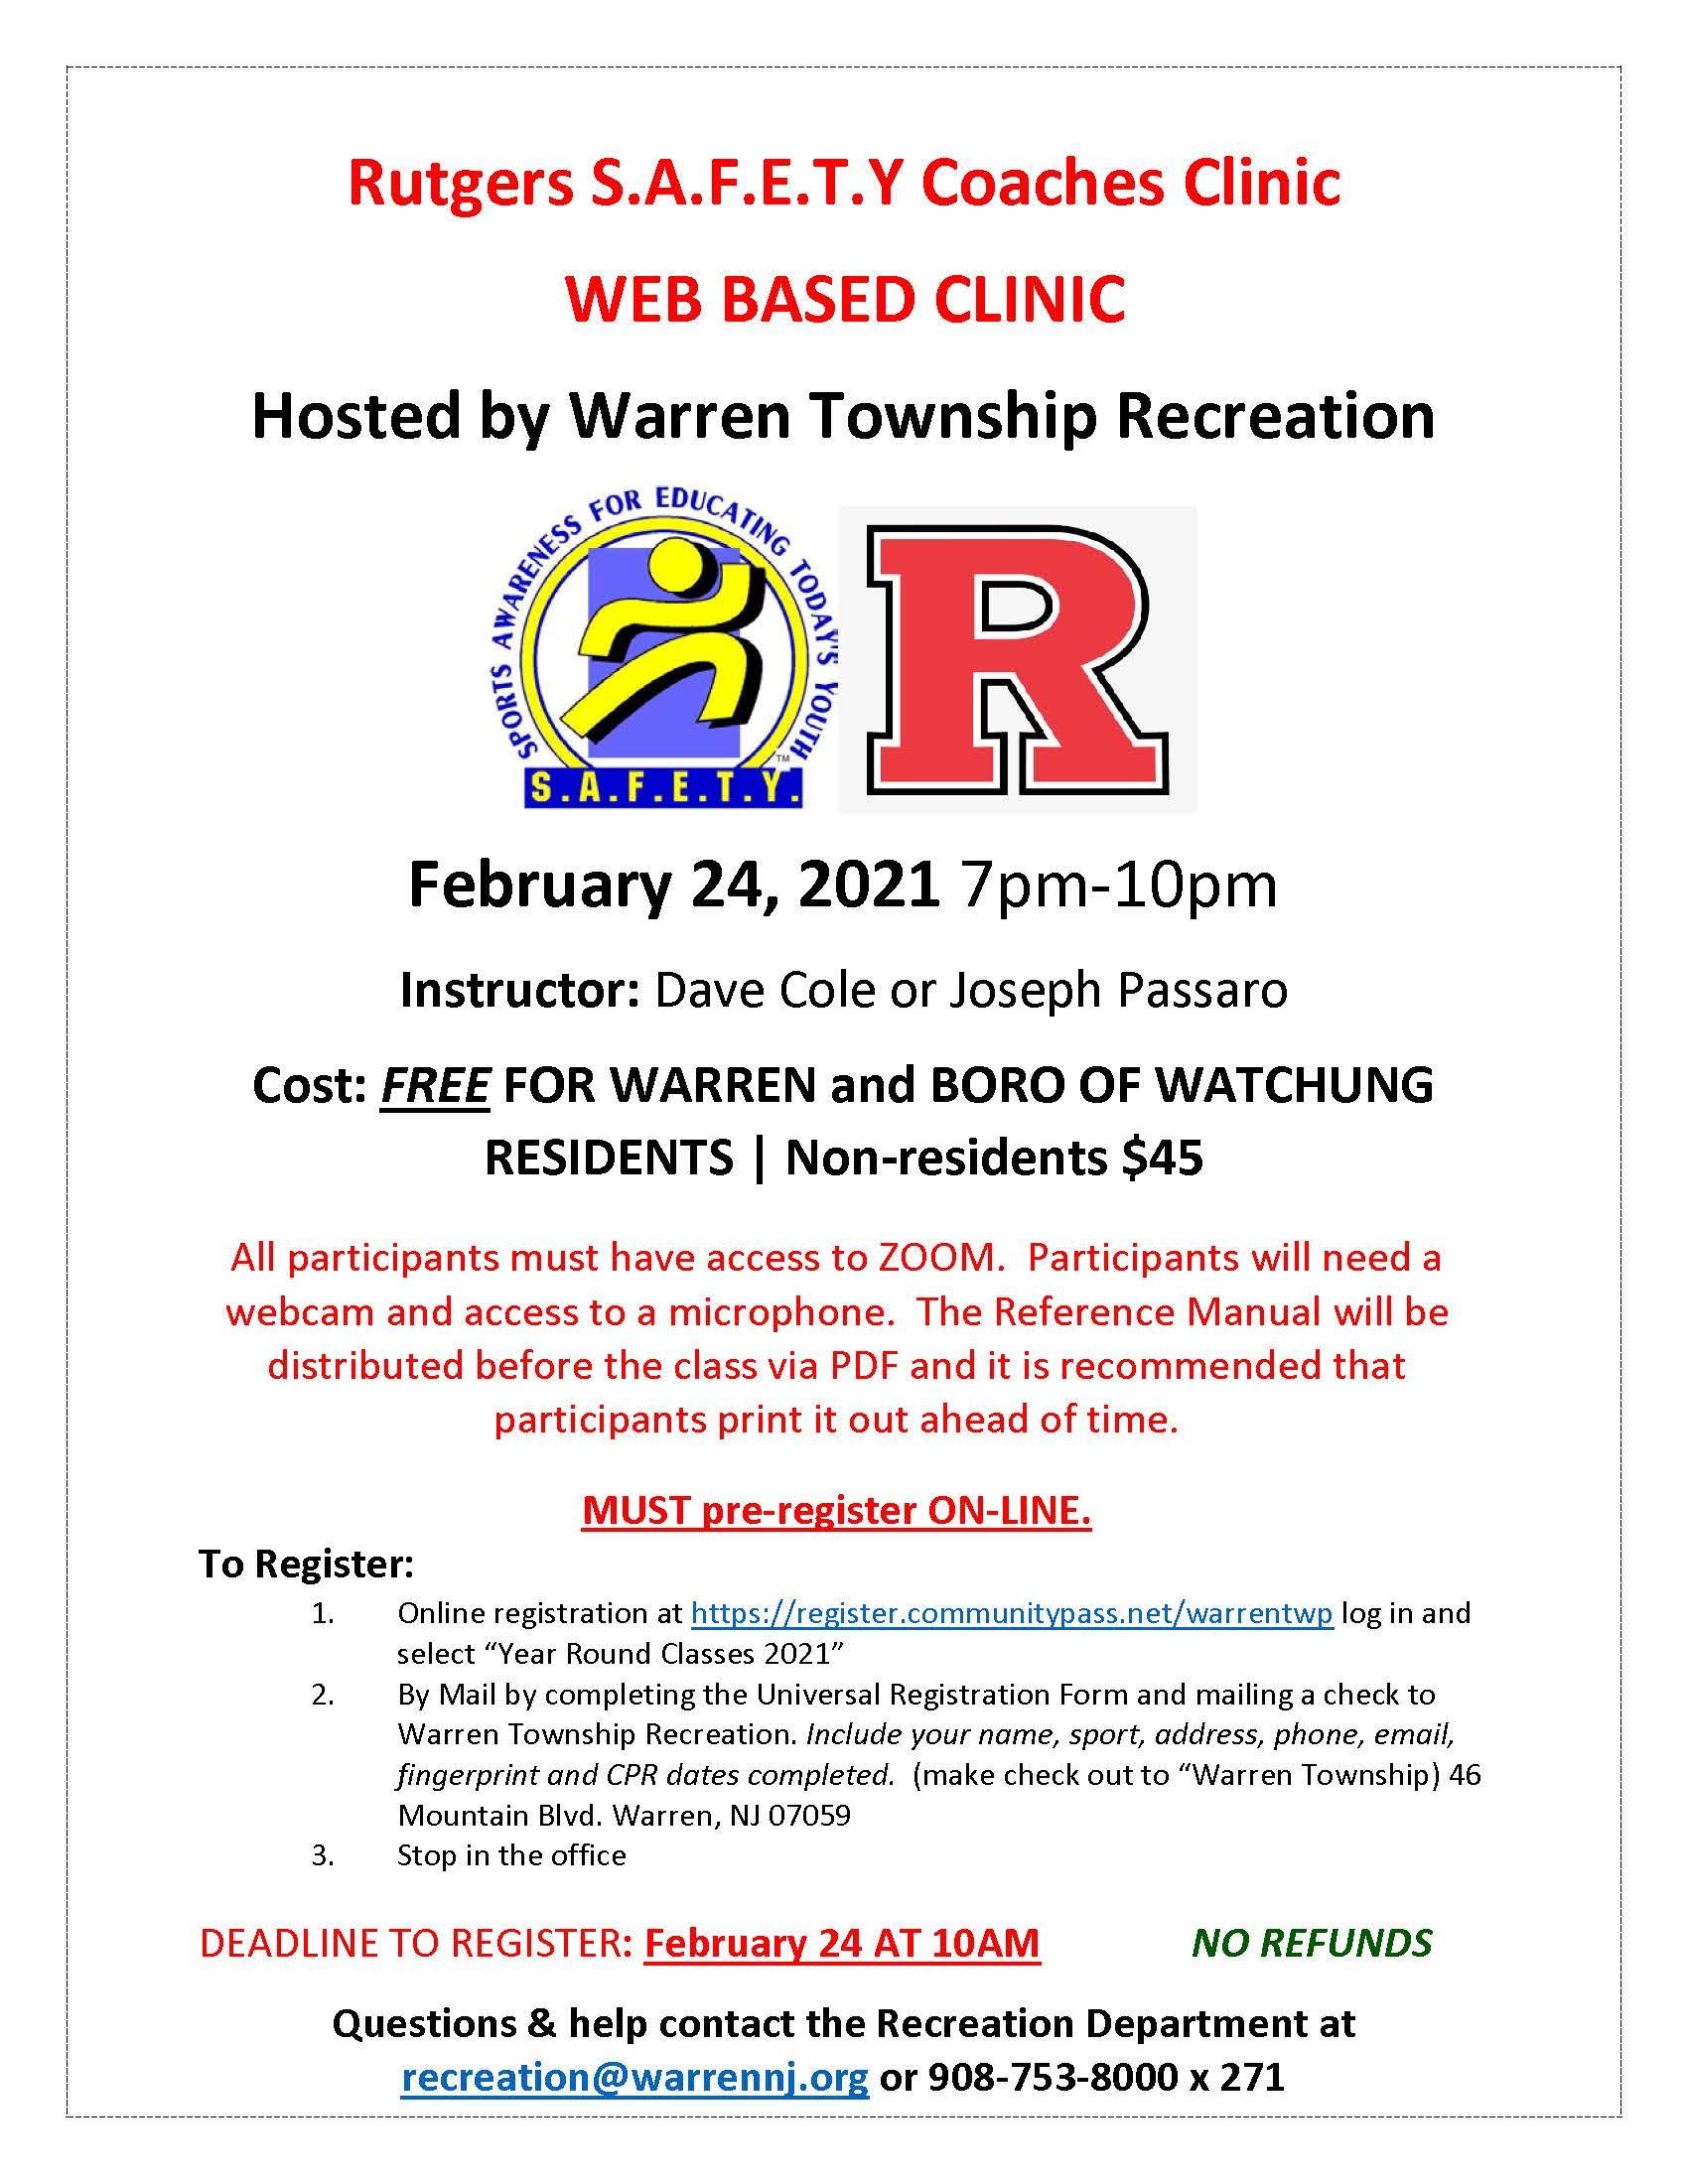 Rutgers SAFETY Coaches Clinic 2-24-2021 flyer